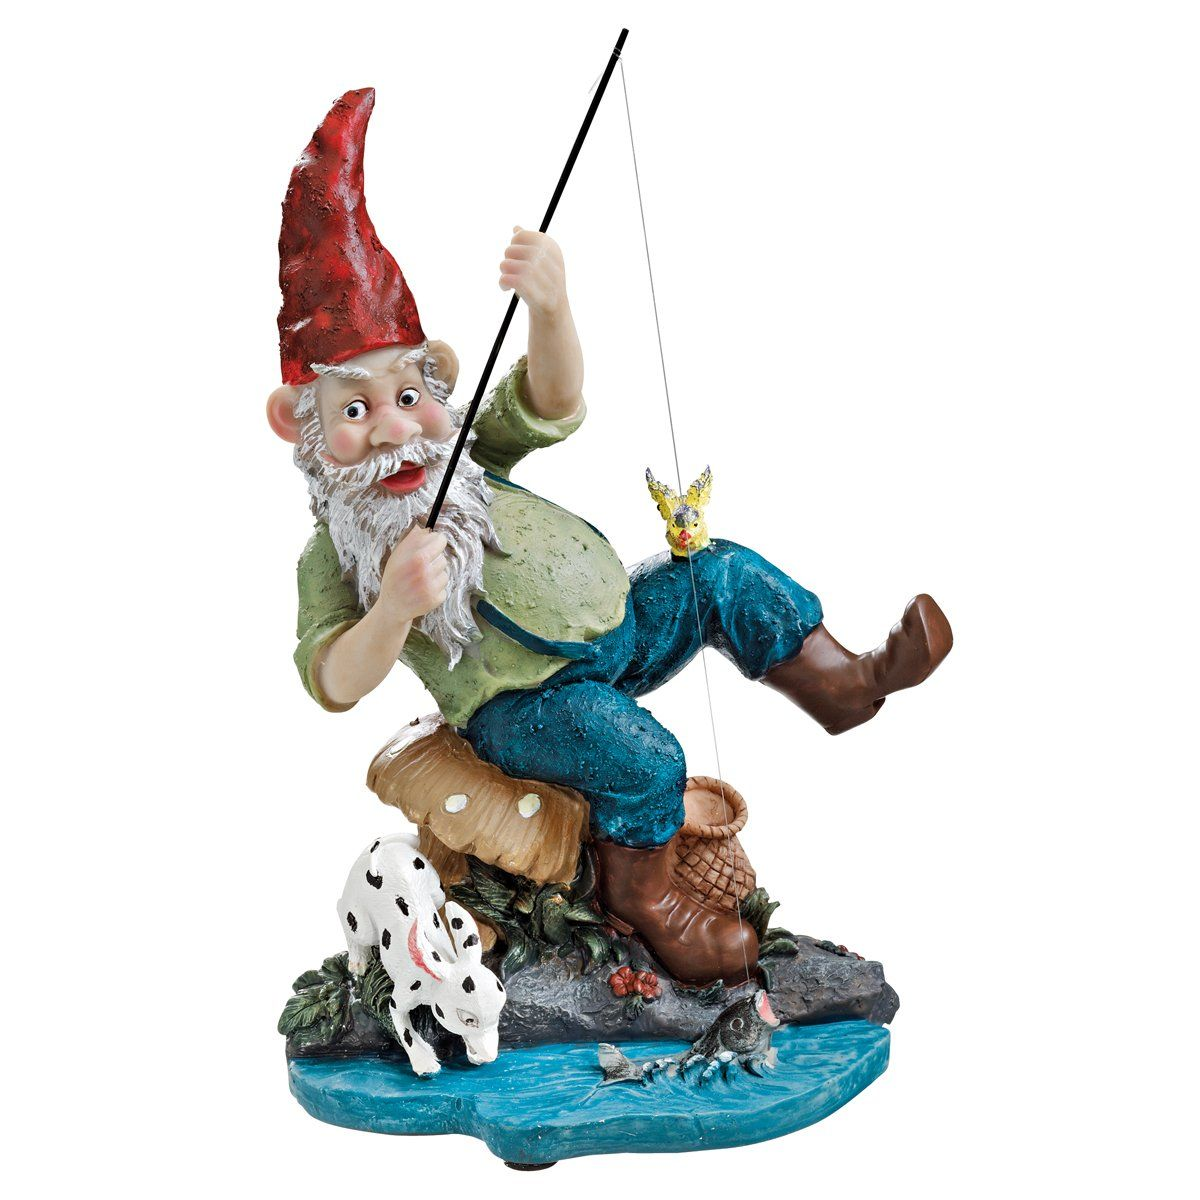 Pin on Gardening Garden ornaments,Furniture, and ideas